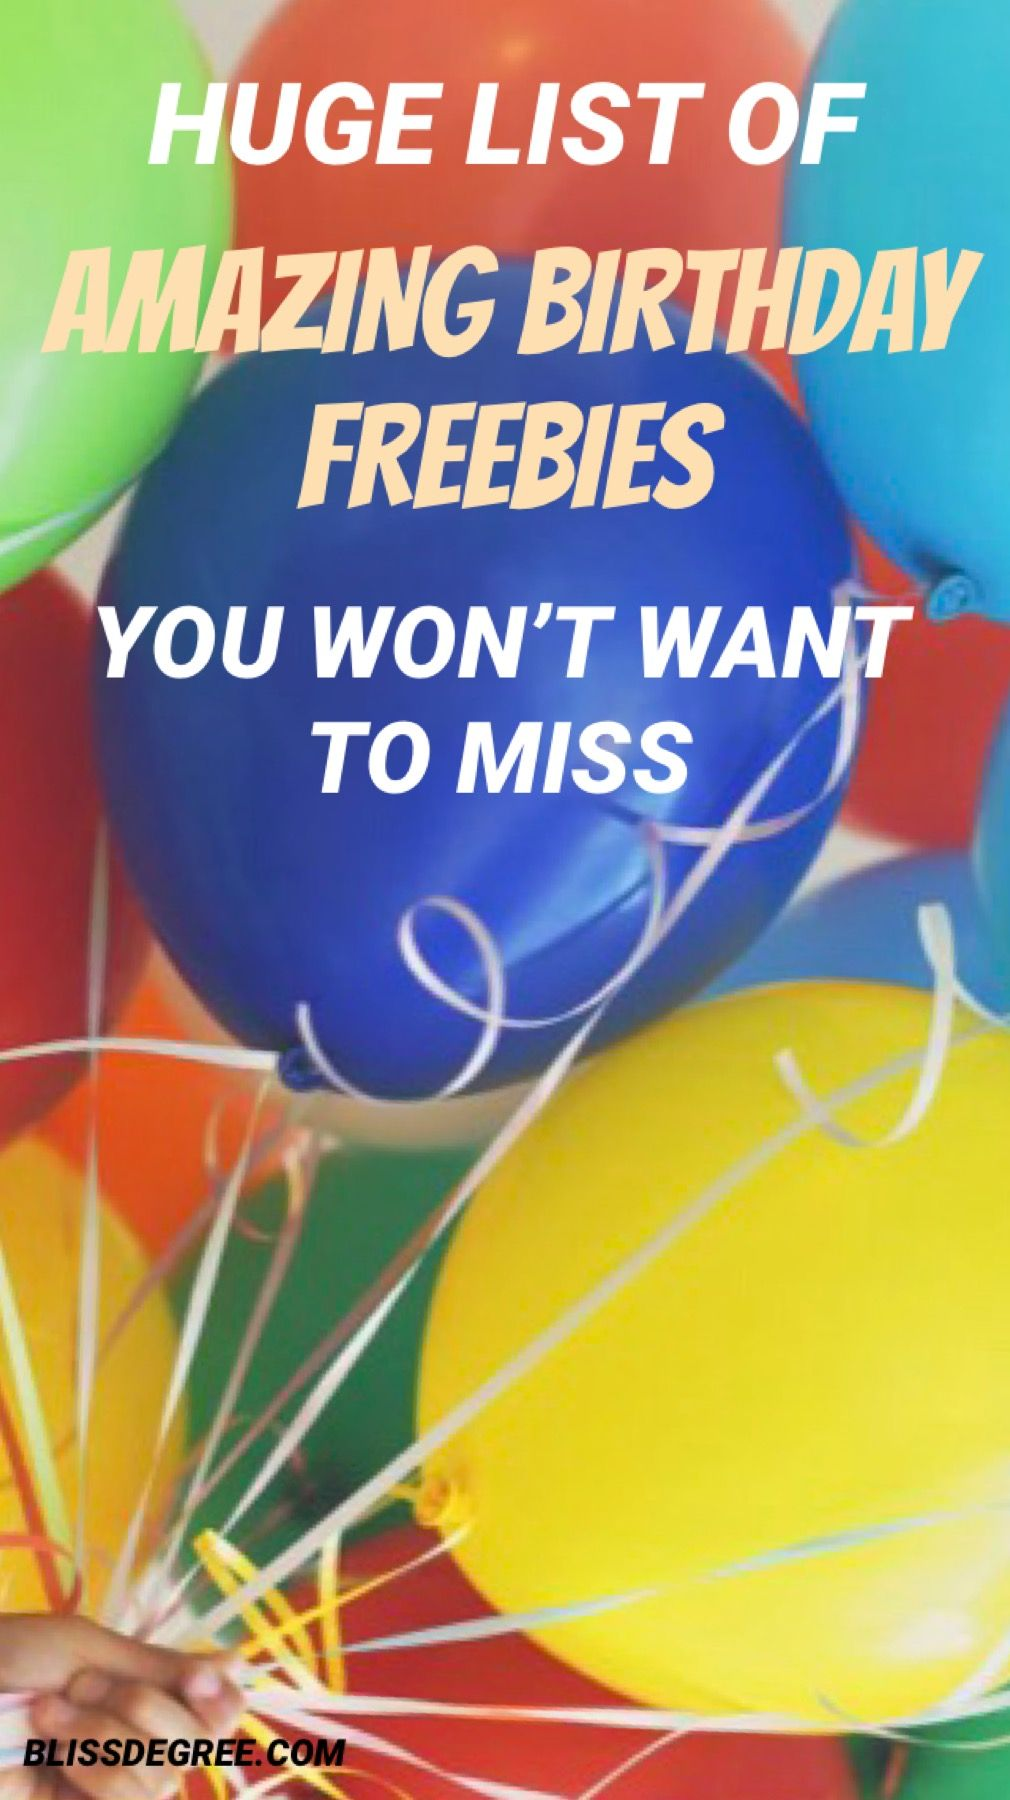 HUGE LIST OF AMAZING BIRTHDAY FREEBIES YOU WON'T WANT TO